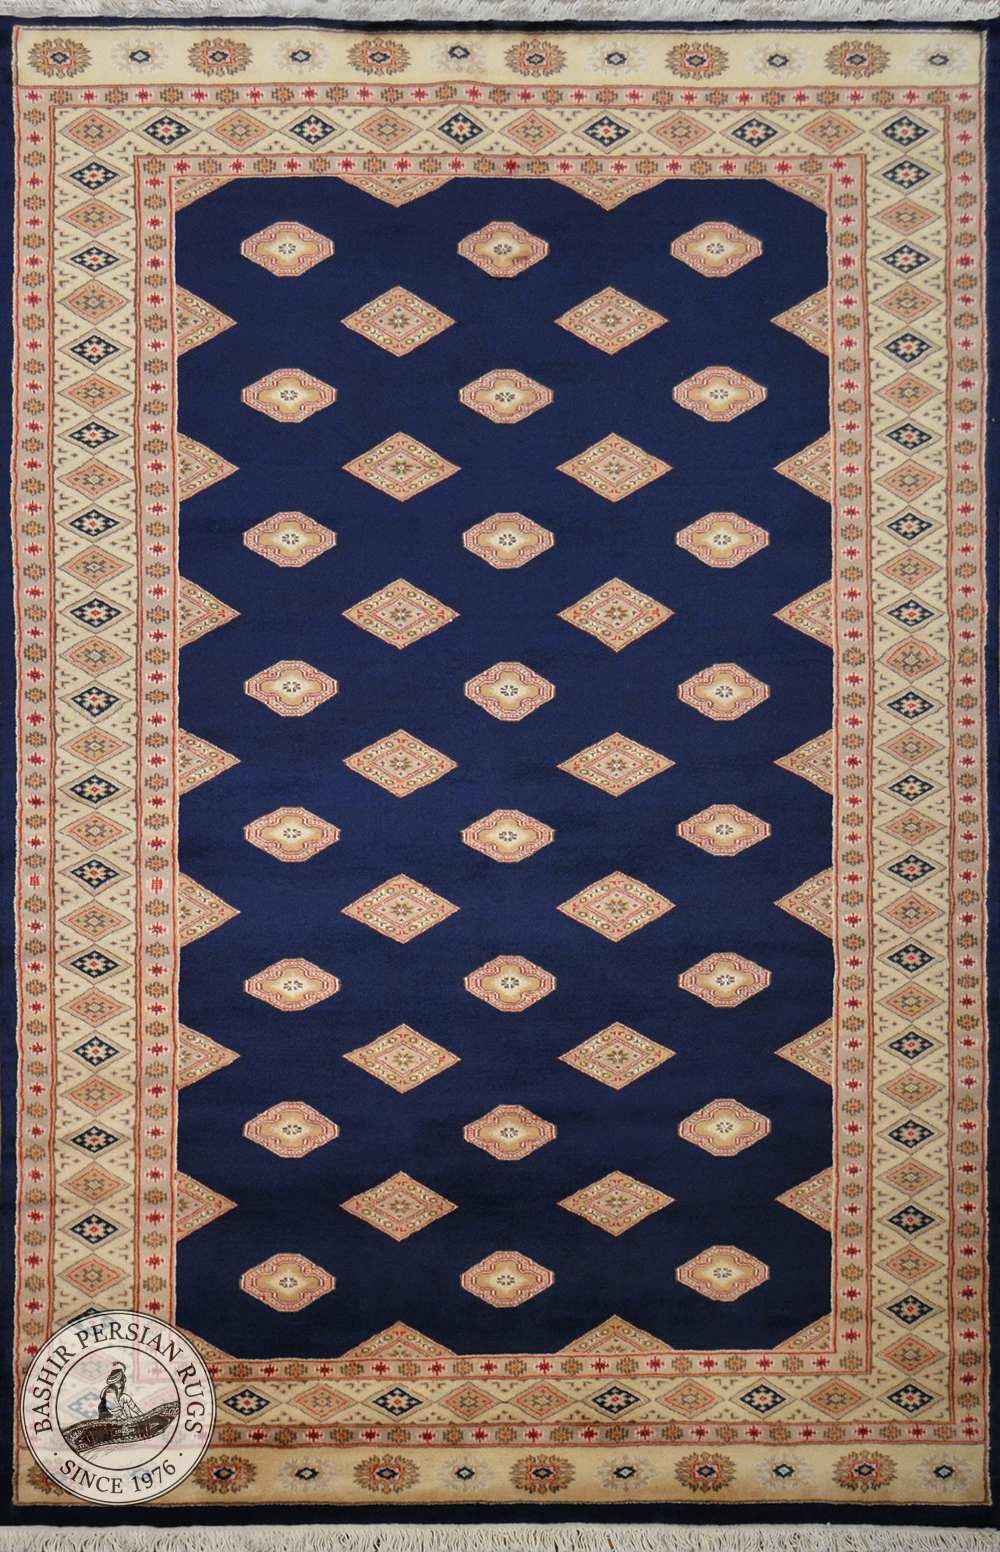 A hand-knotted Pakistani area rug called the Pende Bokhara and made of pure wool.